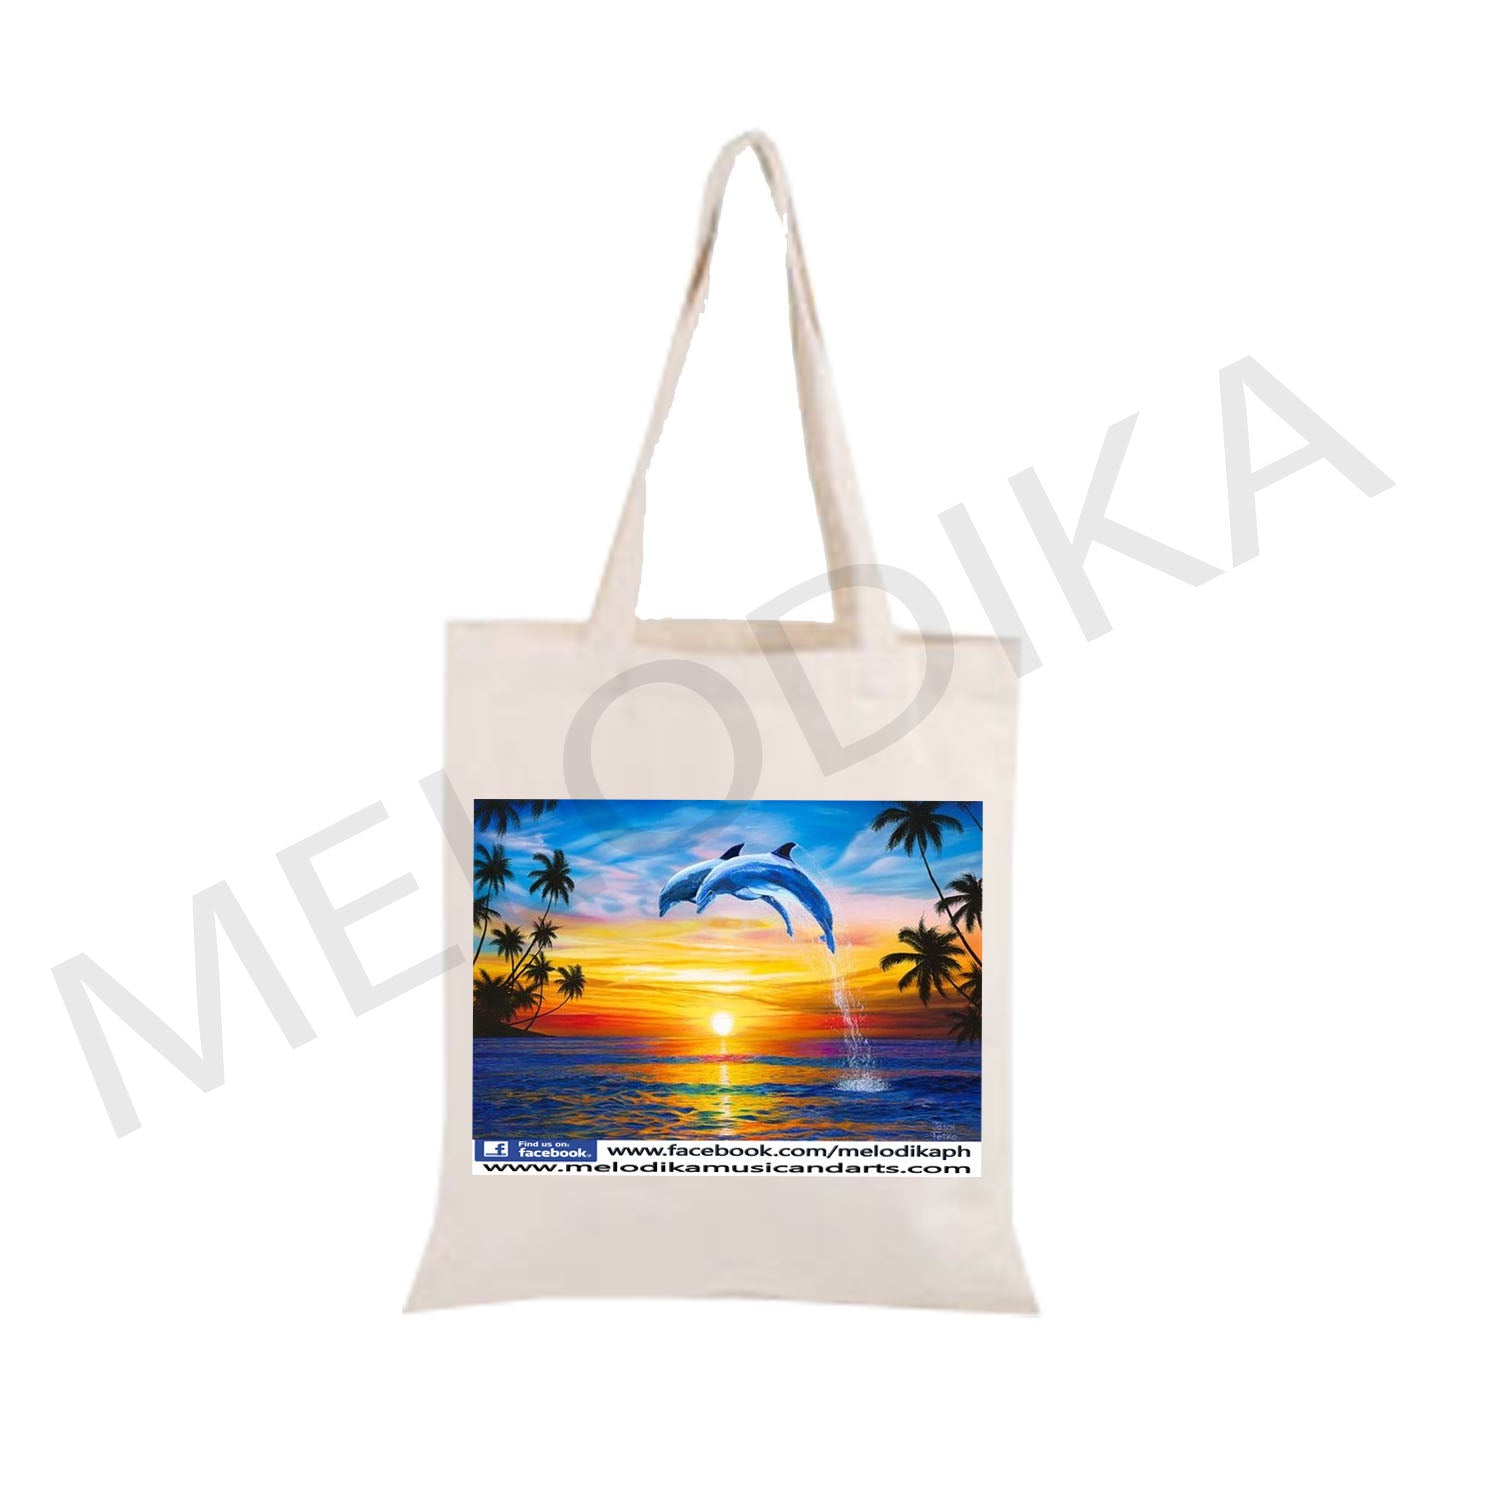 Canvas Tote Dolphin artist bag collections  13x15 inches